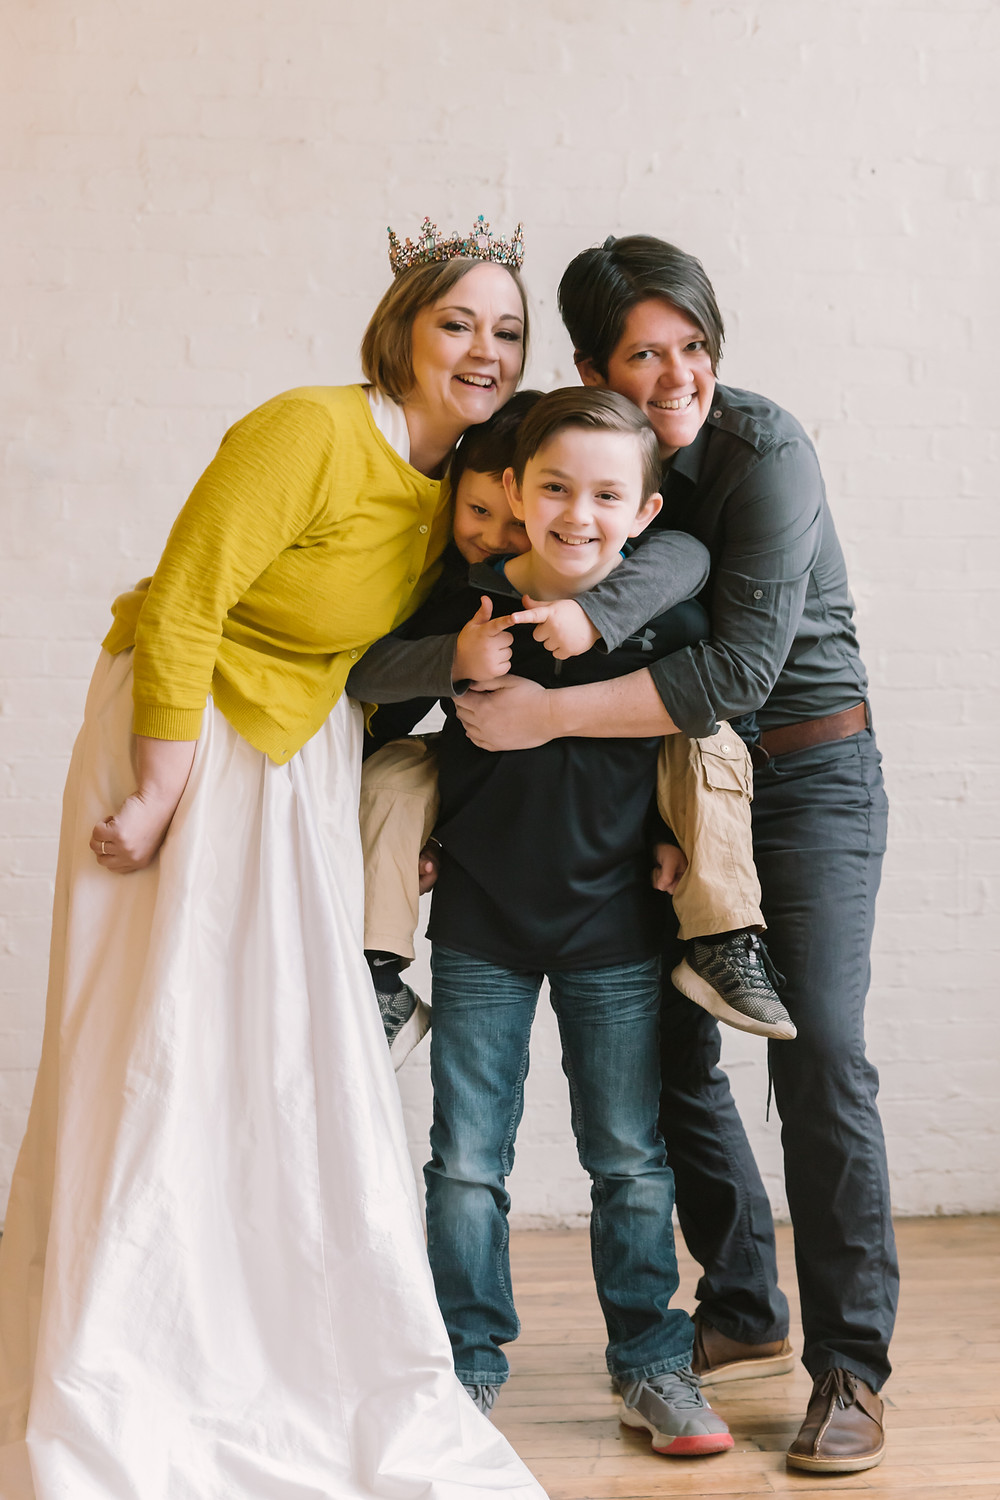 Editorial portrait of a same sex couple and their children by LeeAnn K Photography